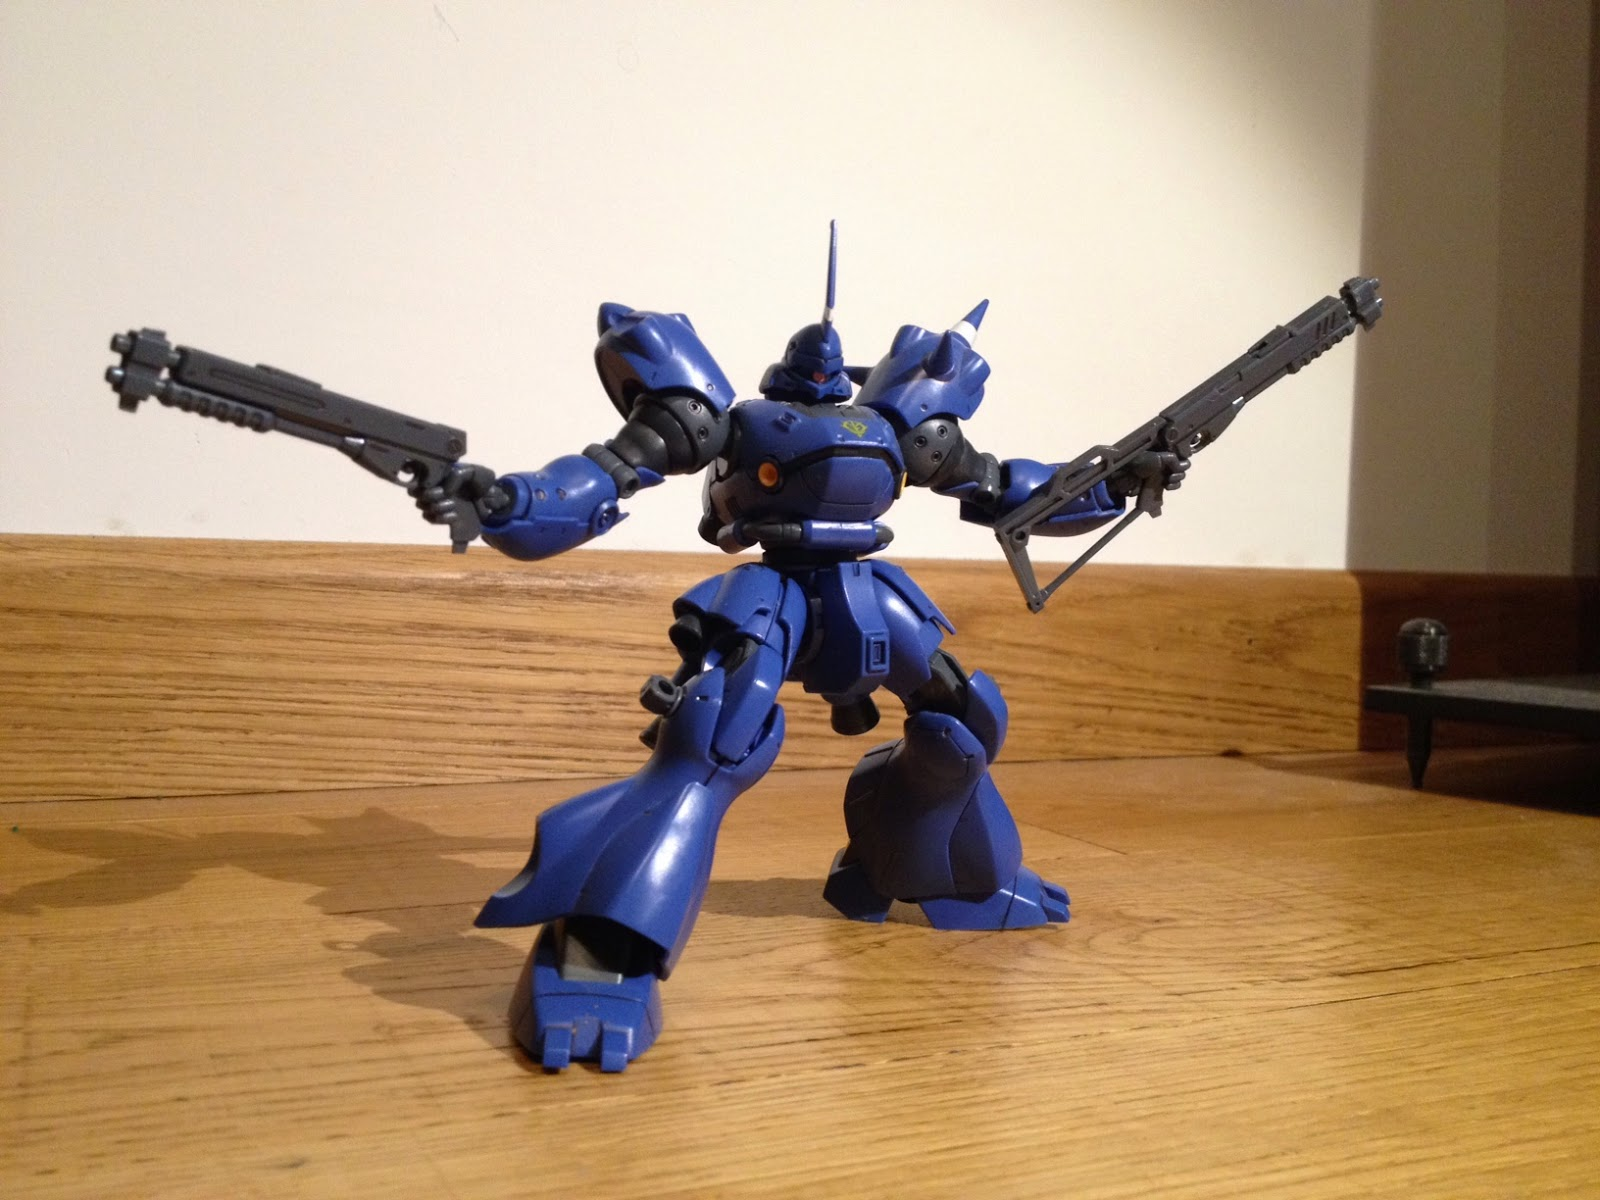 GUNDAMODELLISMO: HGUC MS-18E Kampfer - review Gunpla - a cura di Frost